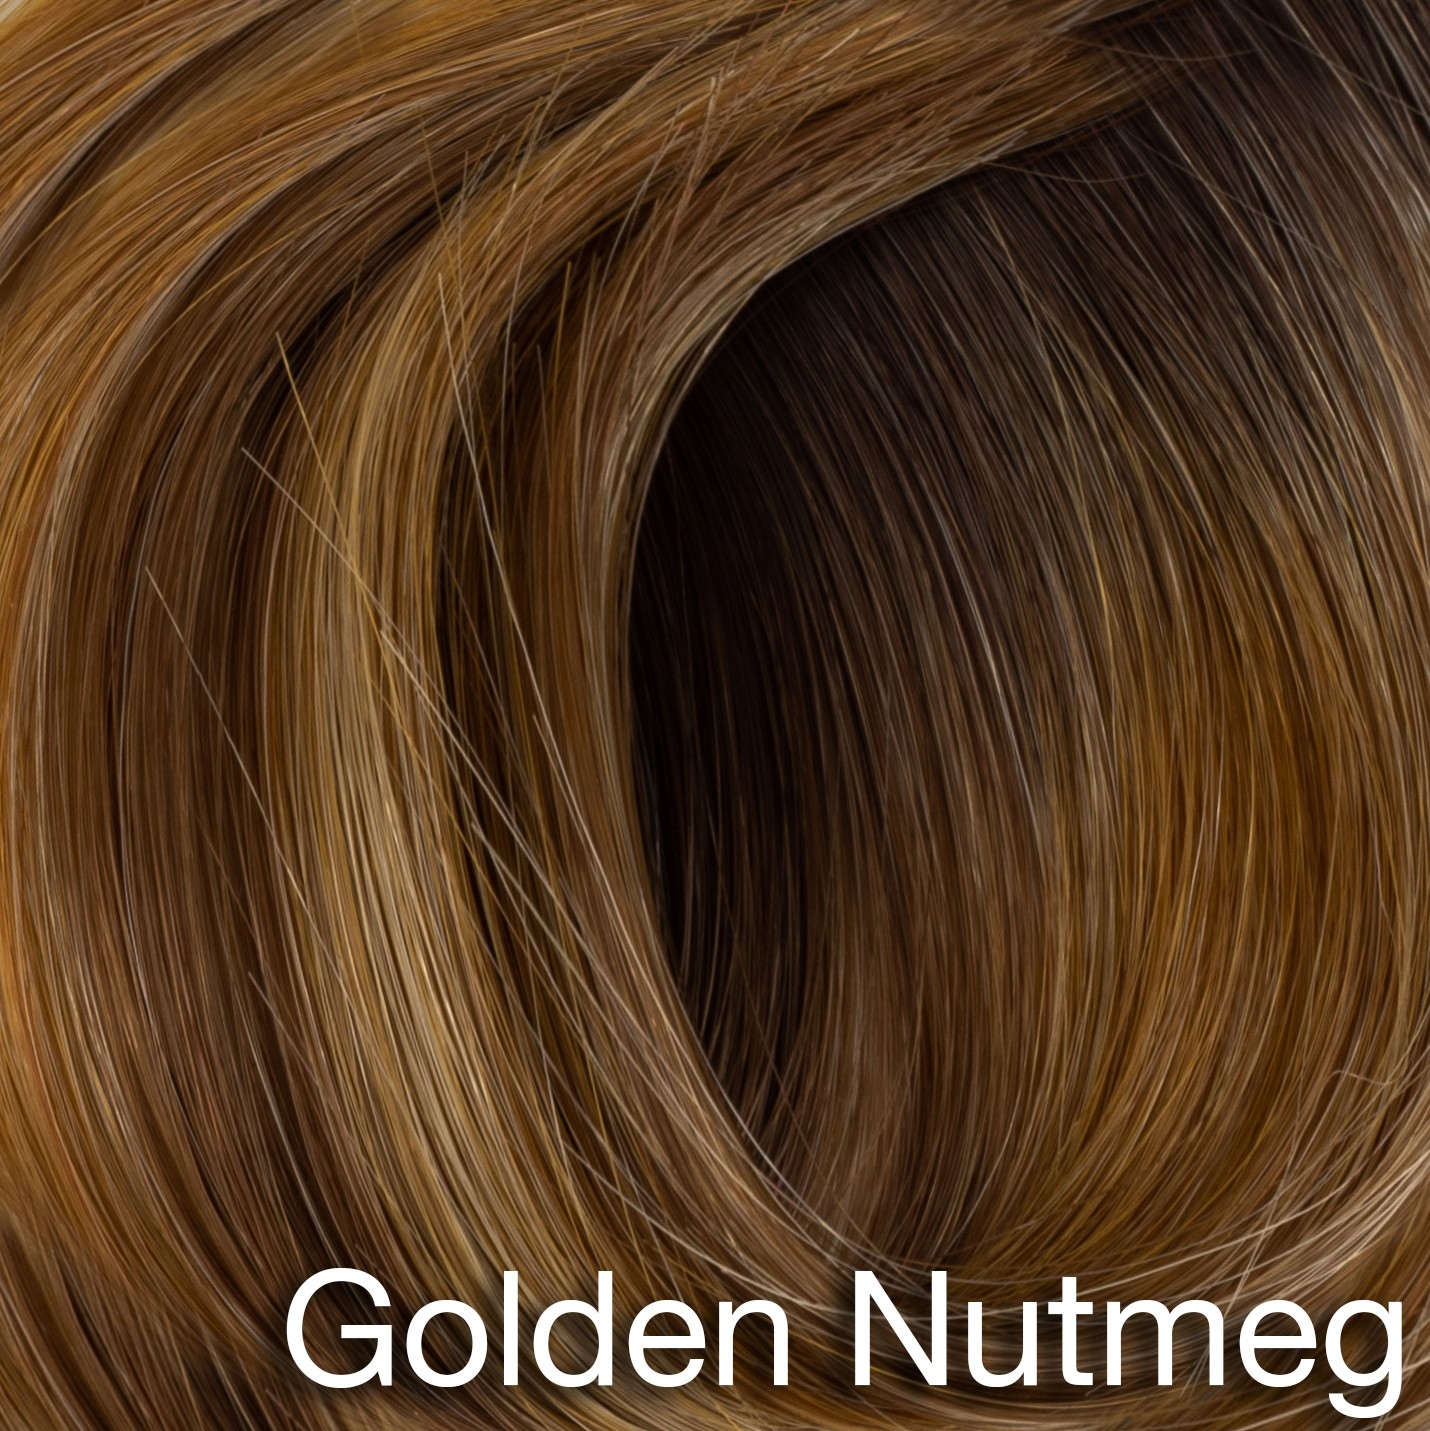 Golden Nutmeg